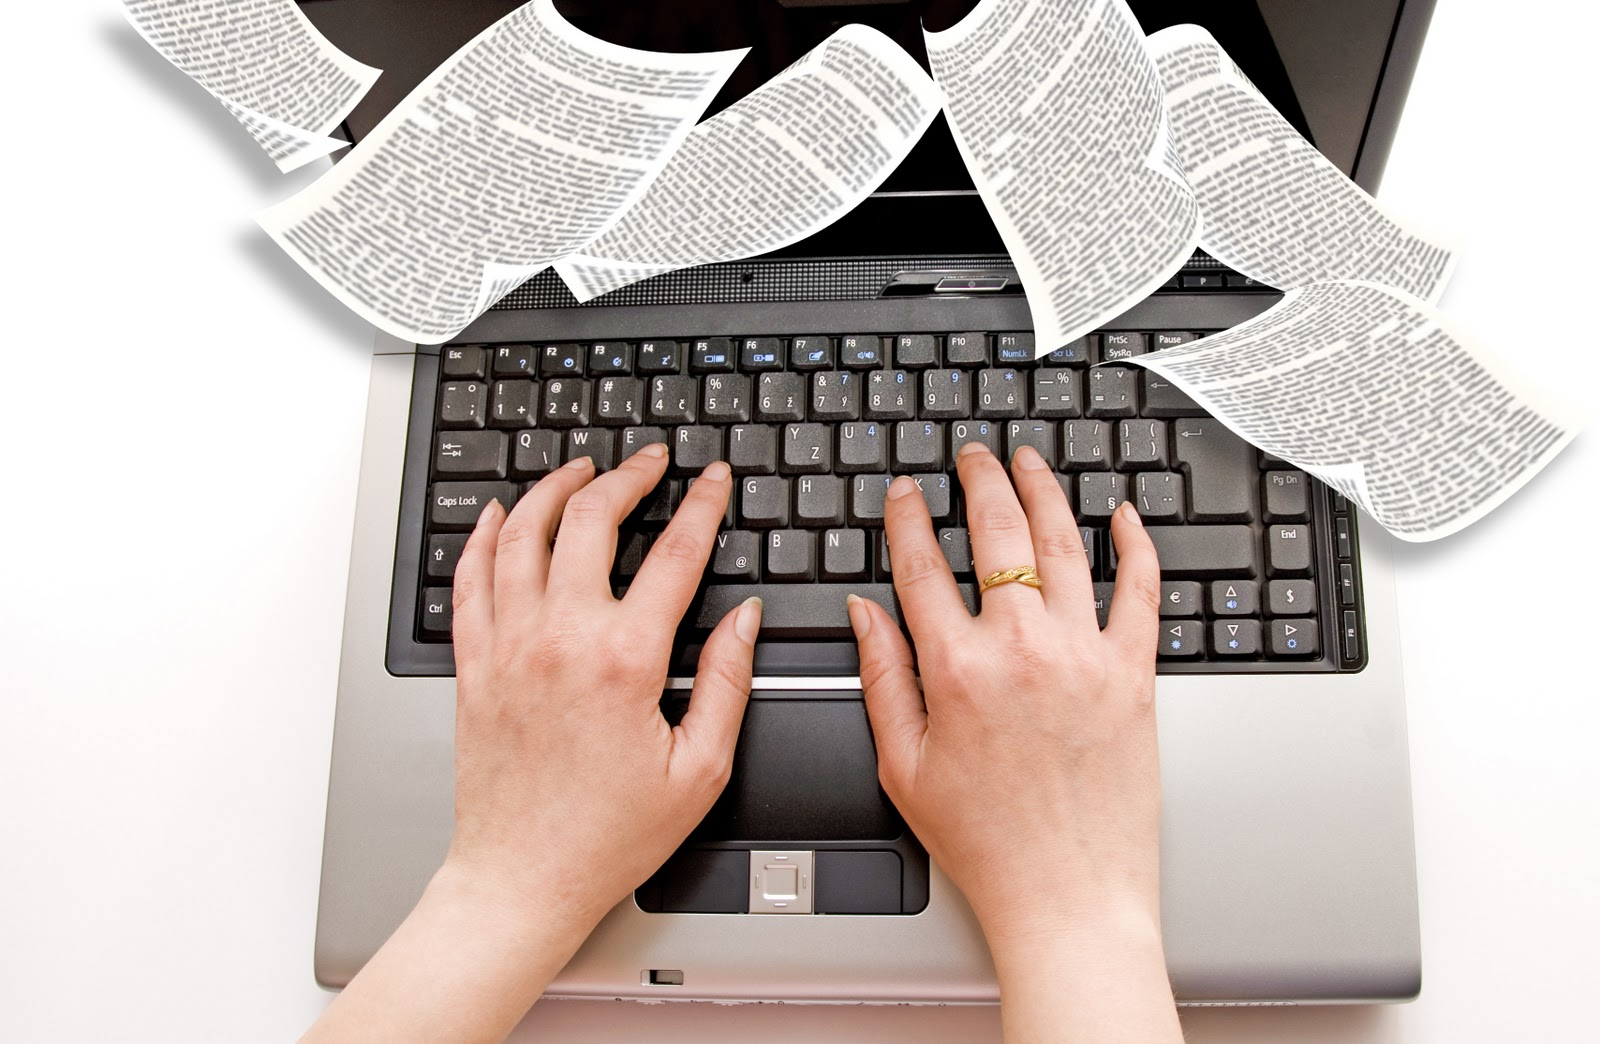 freelance-writing-jobs-for-beginners-home-based-business-as-a-technical-writer